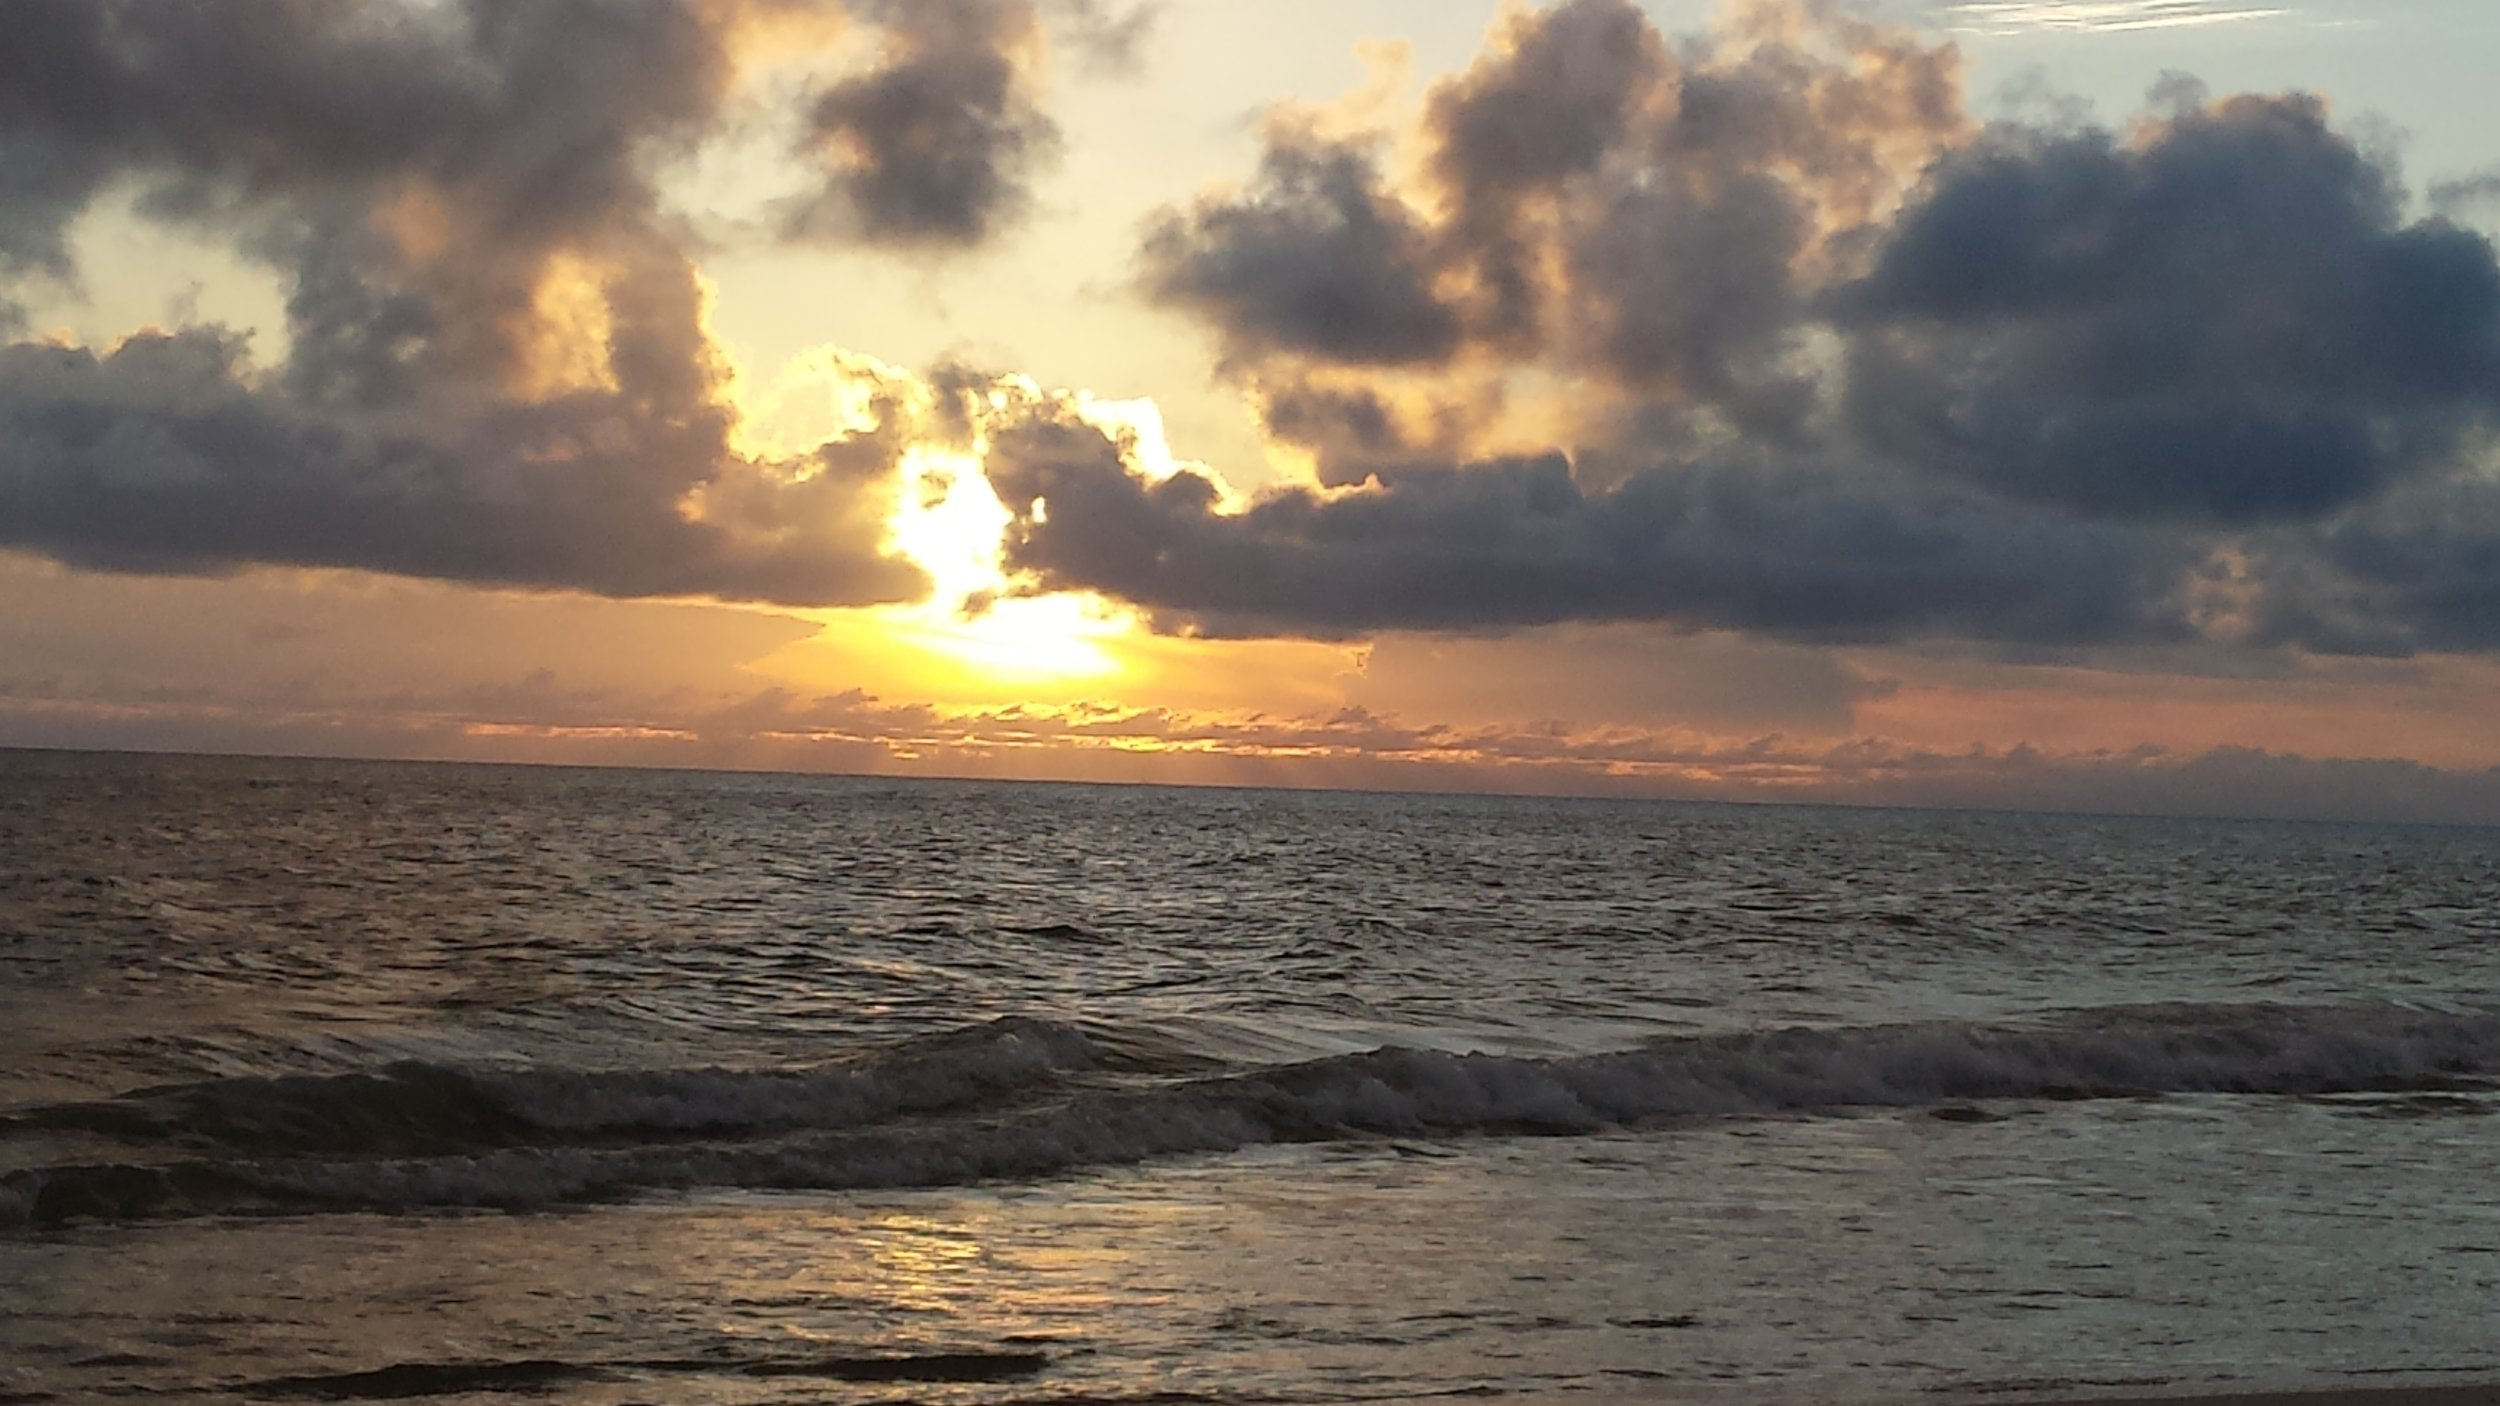 Cape San Blas sunset as the storm approaches.